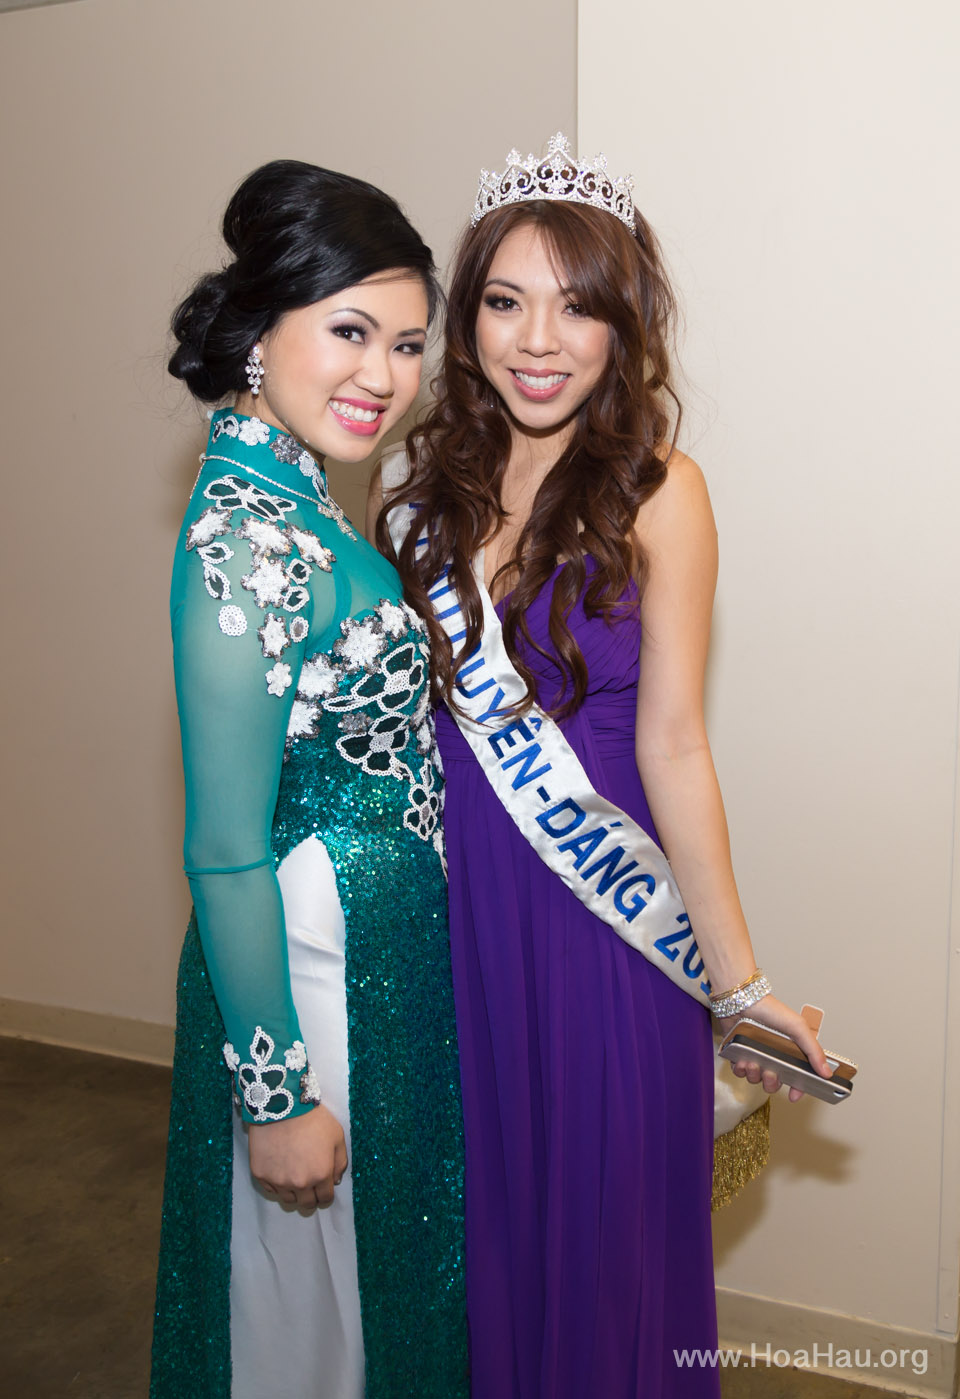 Miss Vietnam of Northern California 2014 - Hoa Hau Ao Dai Bac Cali 2014 - Behind the Scenes - Image 242